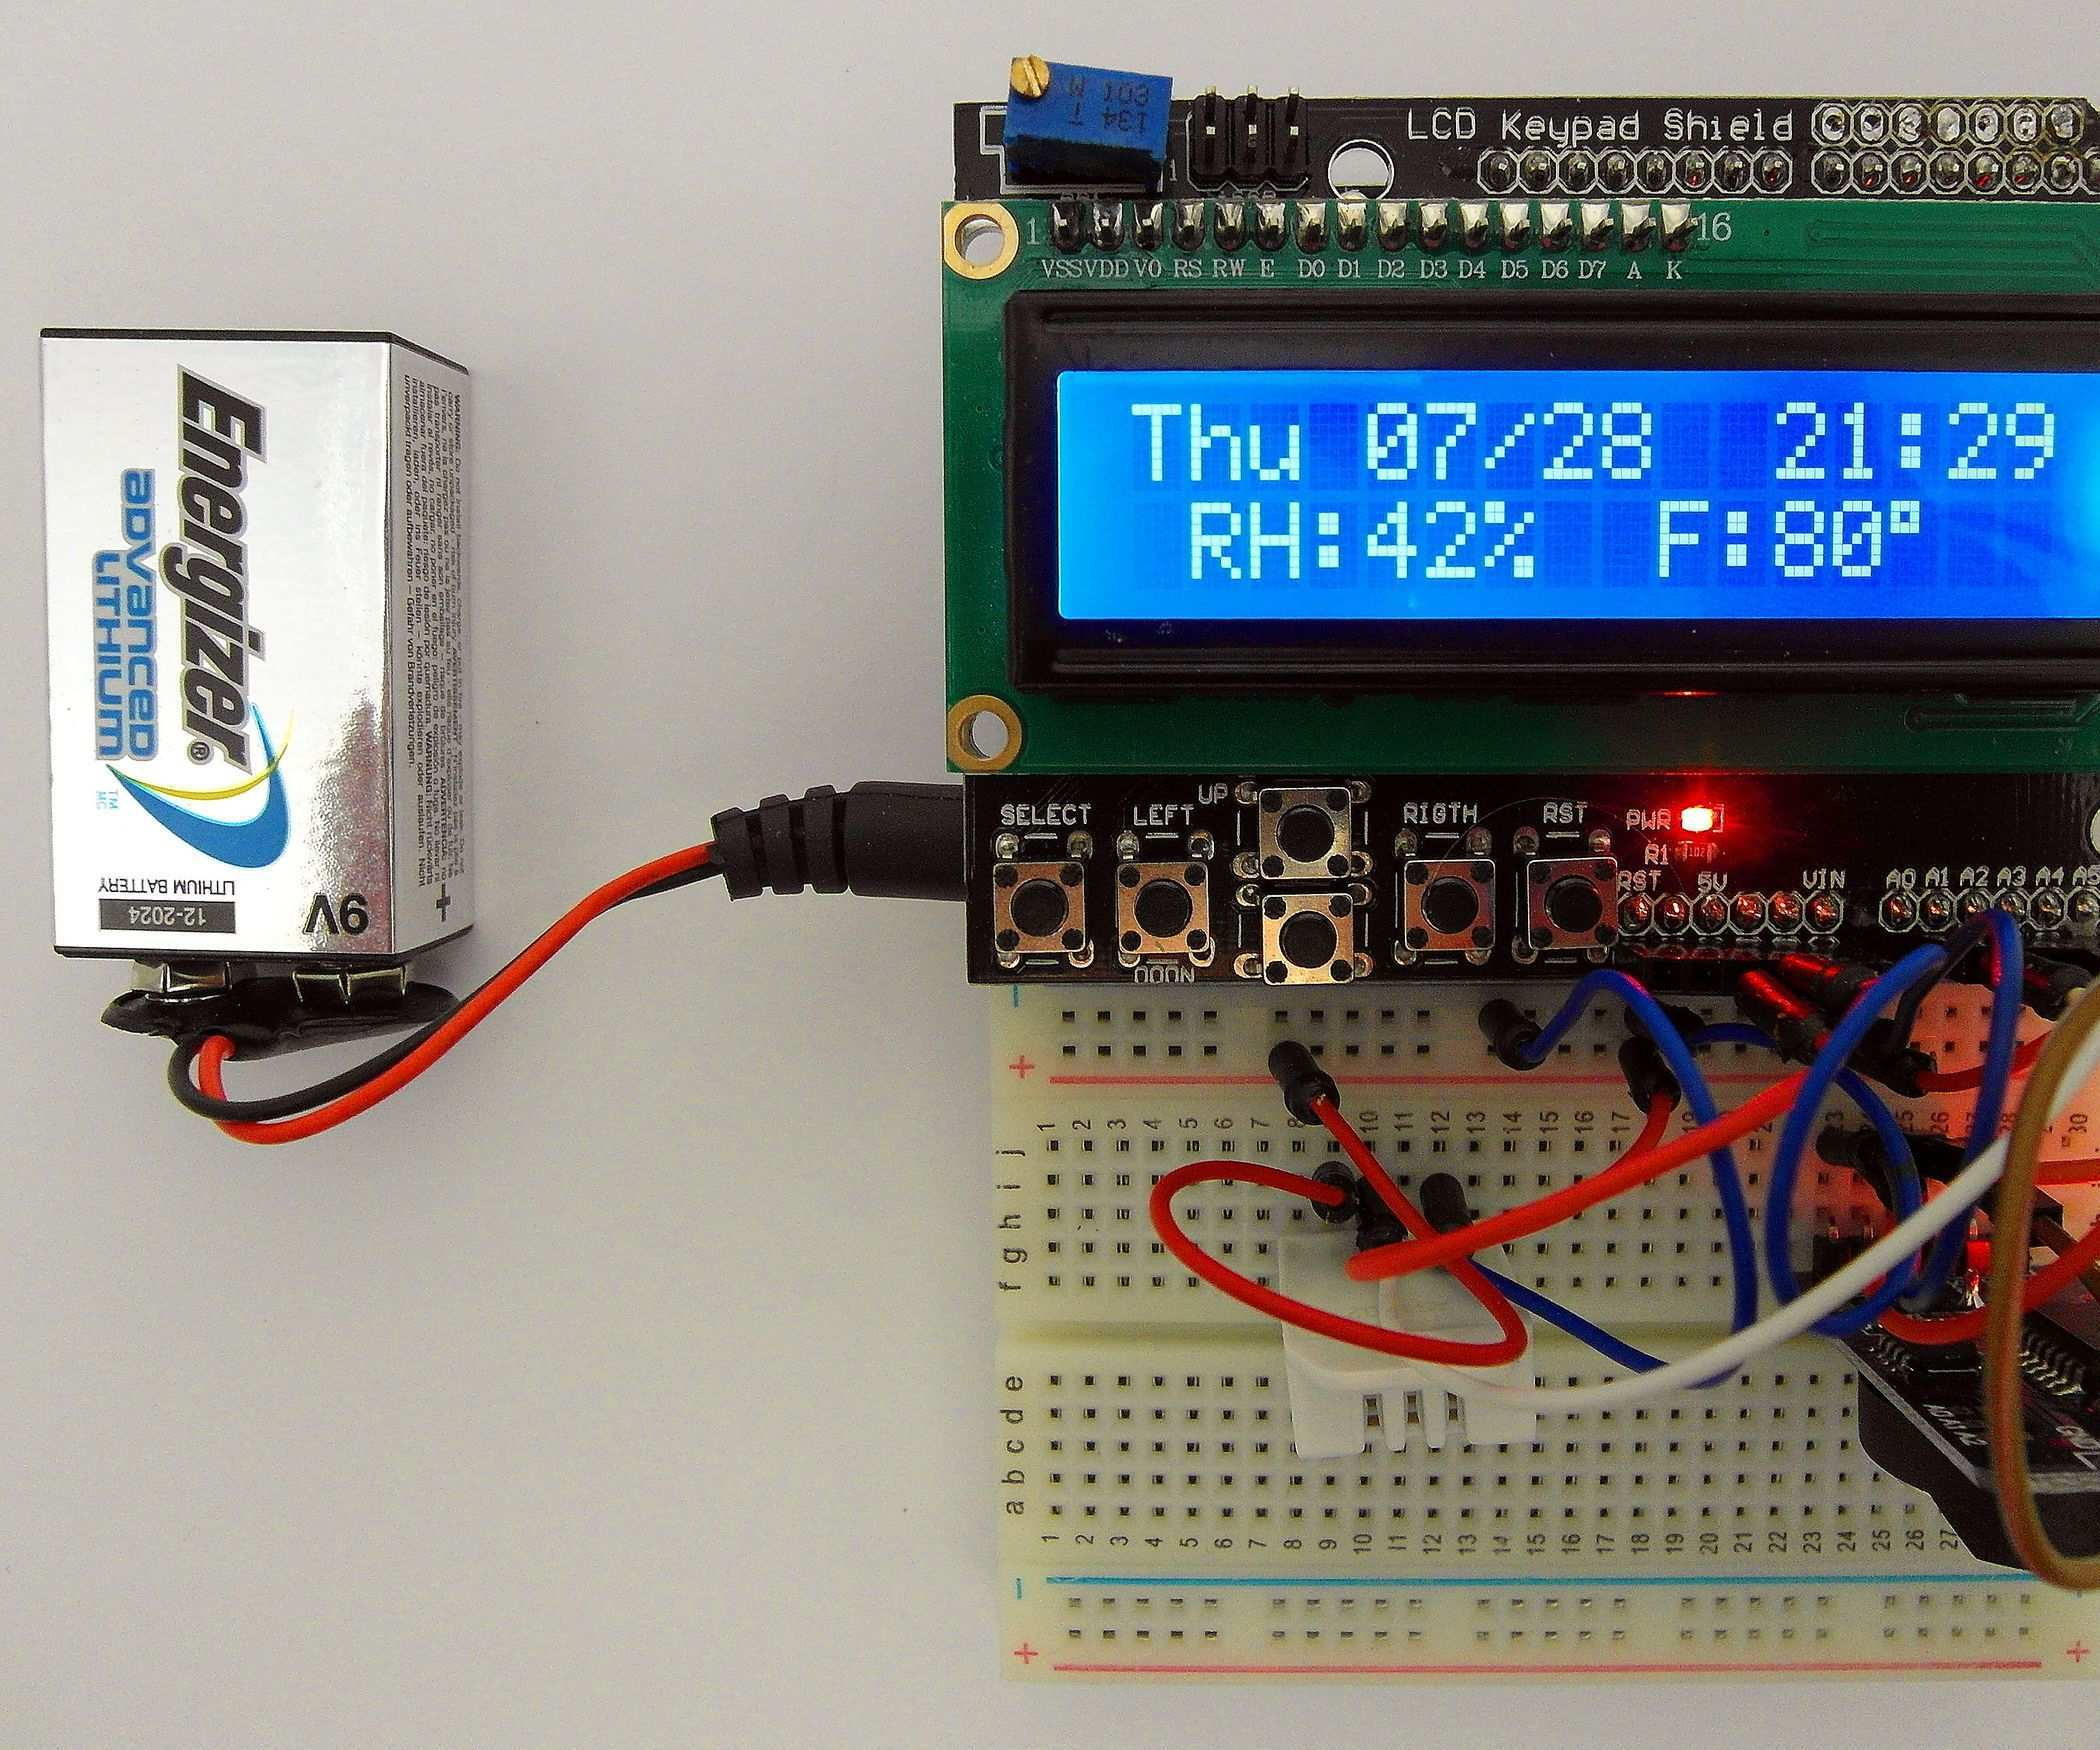 Day Of The Week Calendar Time Humidity Temperature With Battery Saver Arduino Lcd Keypad Shield Arduino Projects